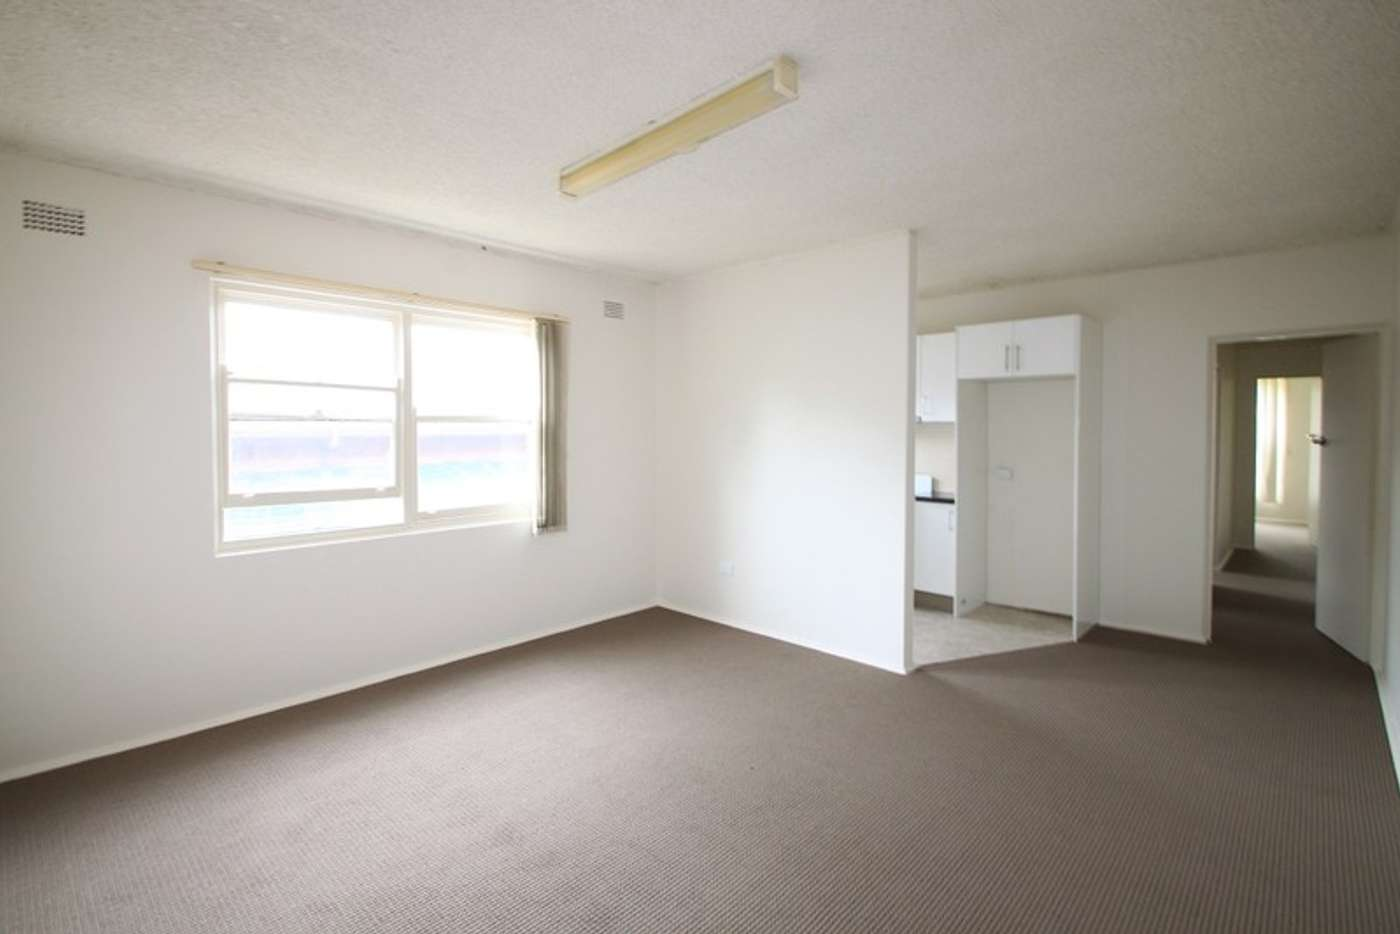 Seventh view of Homely apartment listing, 3/16 Myee Street, Lakemba NSW 2195